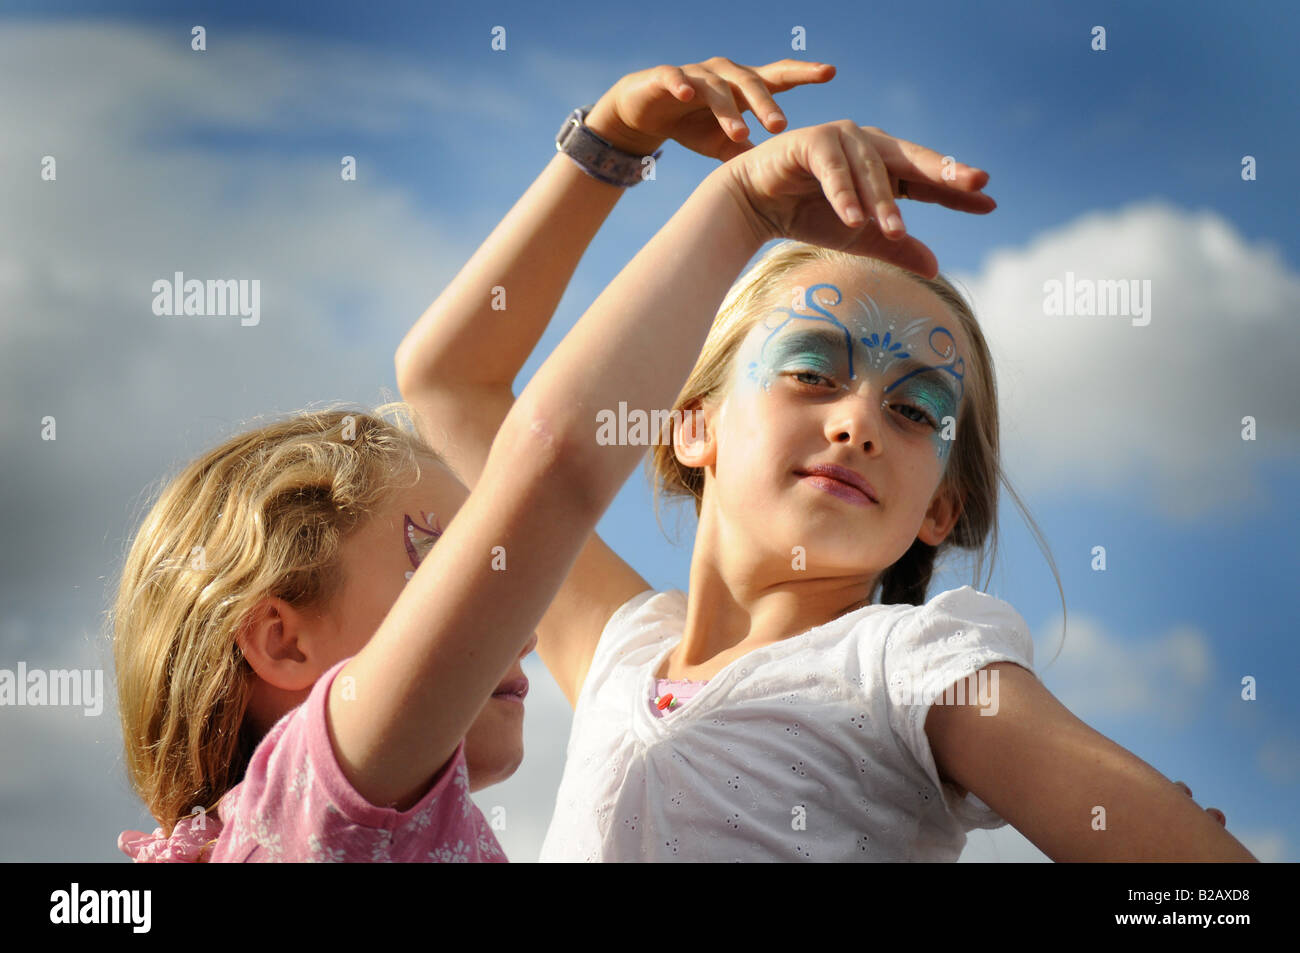 Photograph of two young girls with painted faces dancing at a music festival in the UK - Stock Image